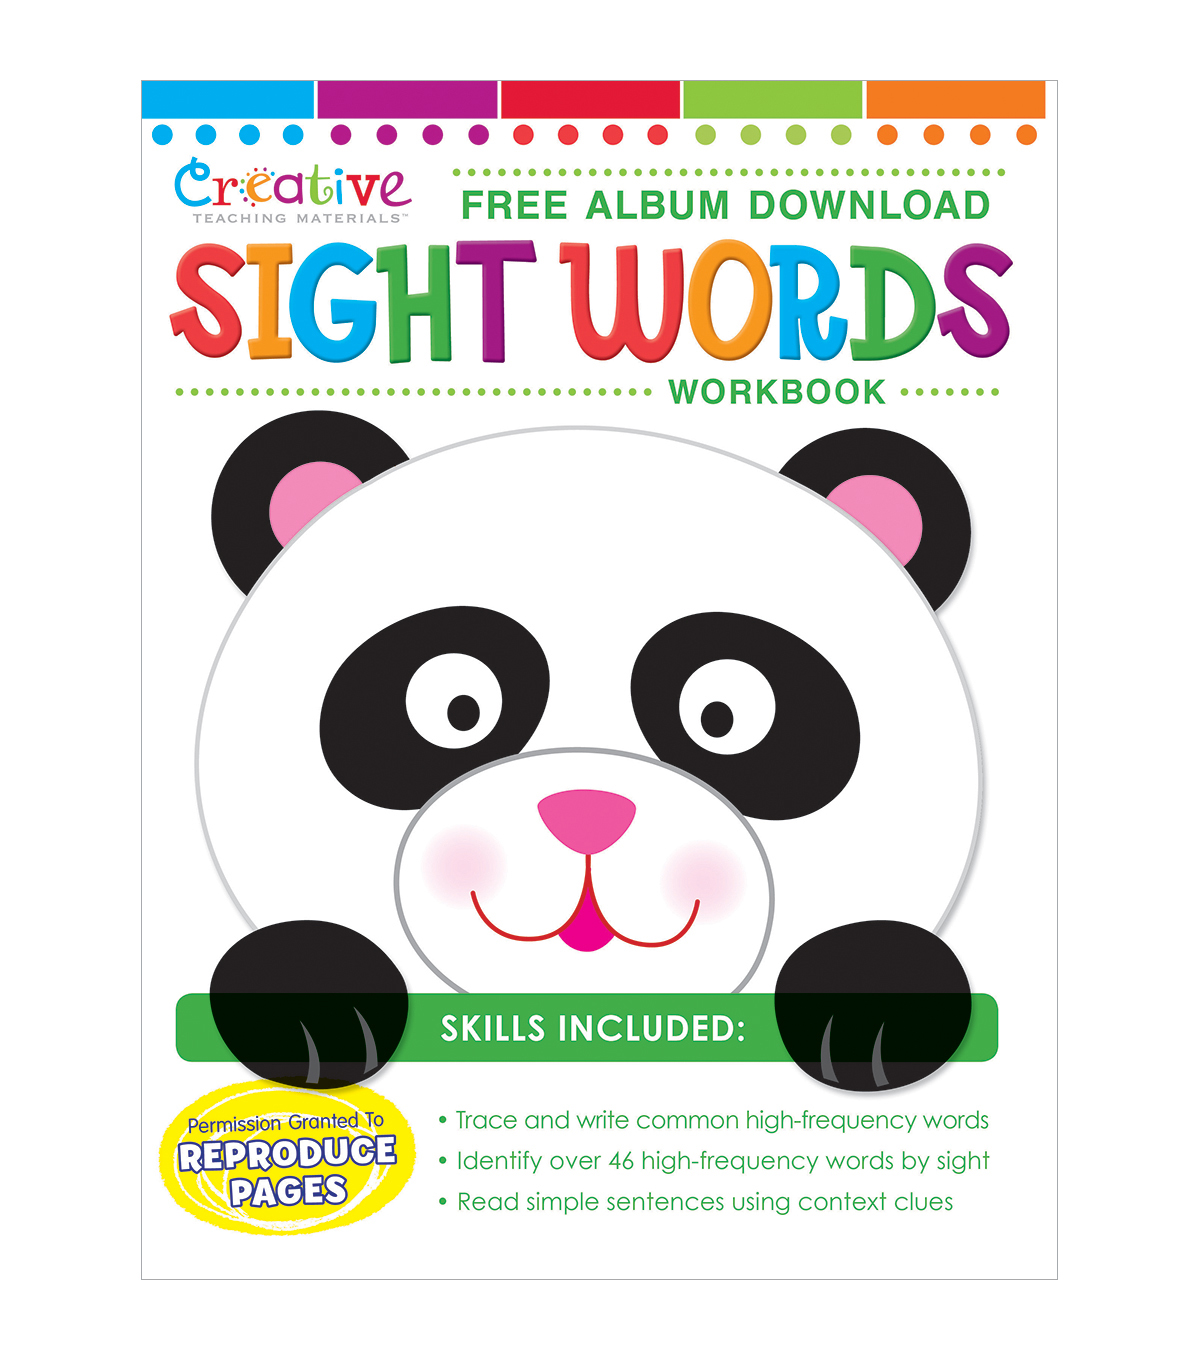 Creative Teaching Materials Workbook-Sight Words